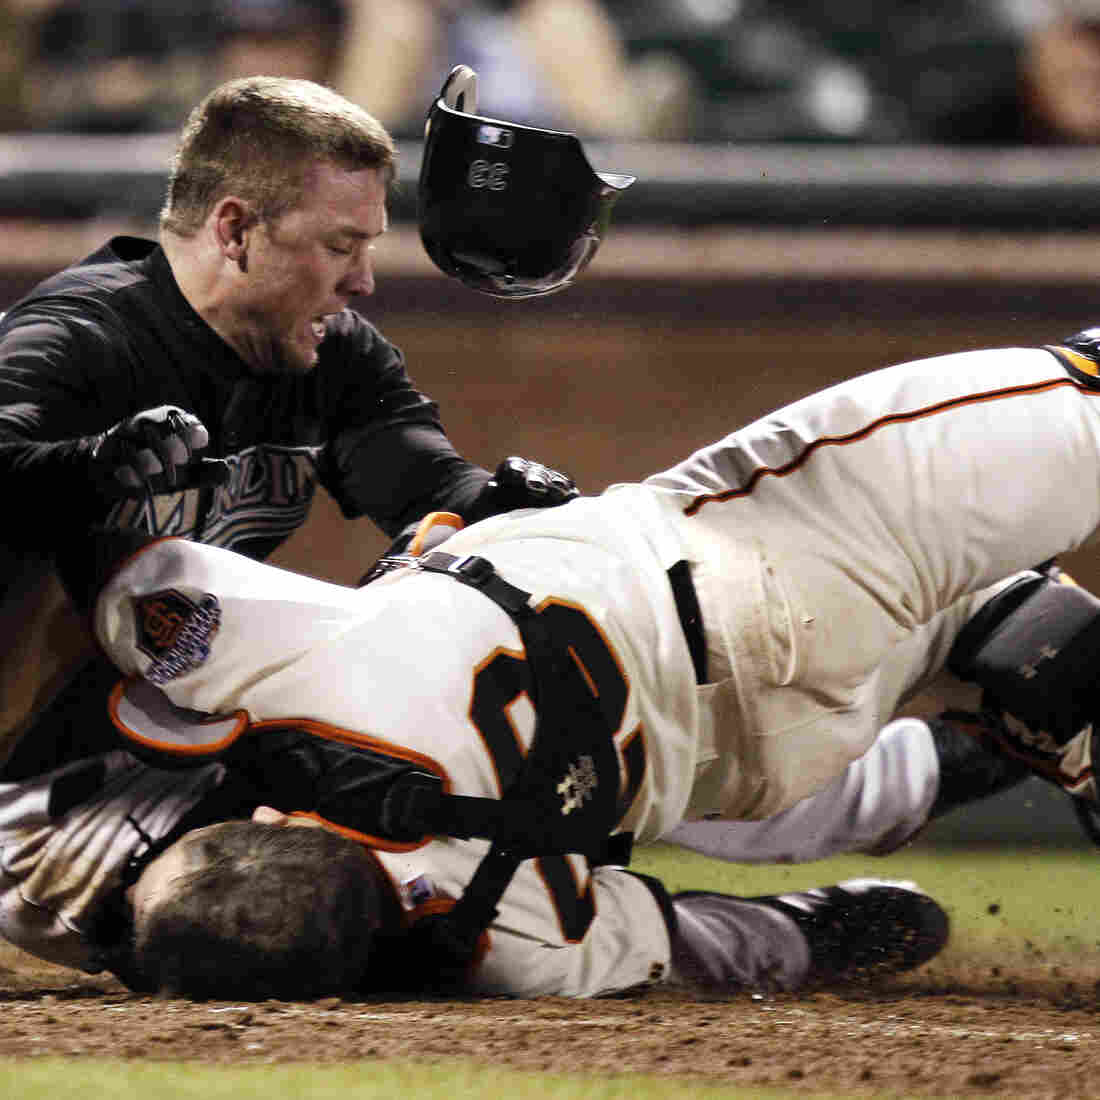 A 2011 collision that left San Francisco Giants catcher Buster Posey with a broken leg sparked an MLB debate about preventing injuries. Many collisions have caused head injuries, but a bigger risk to catchers is foul tips.